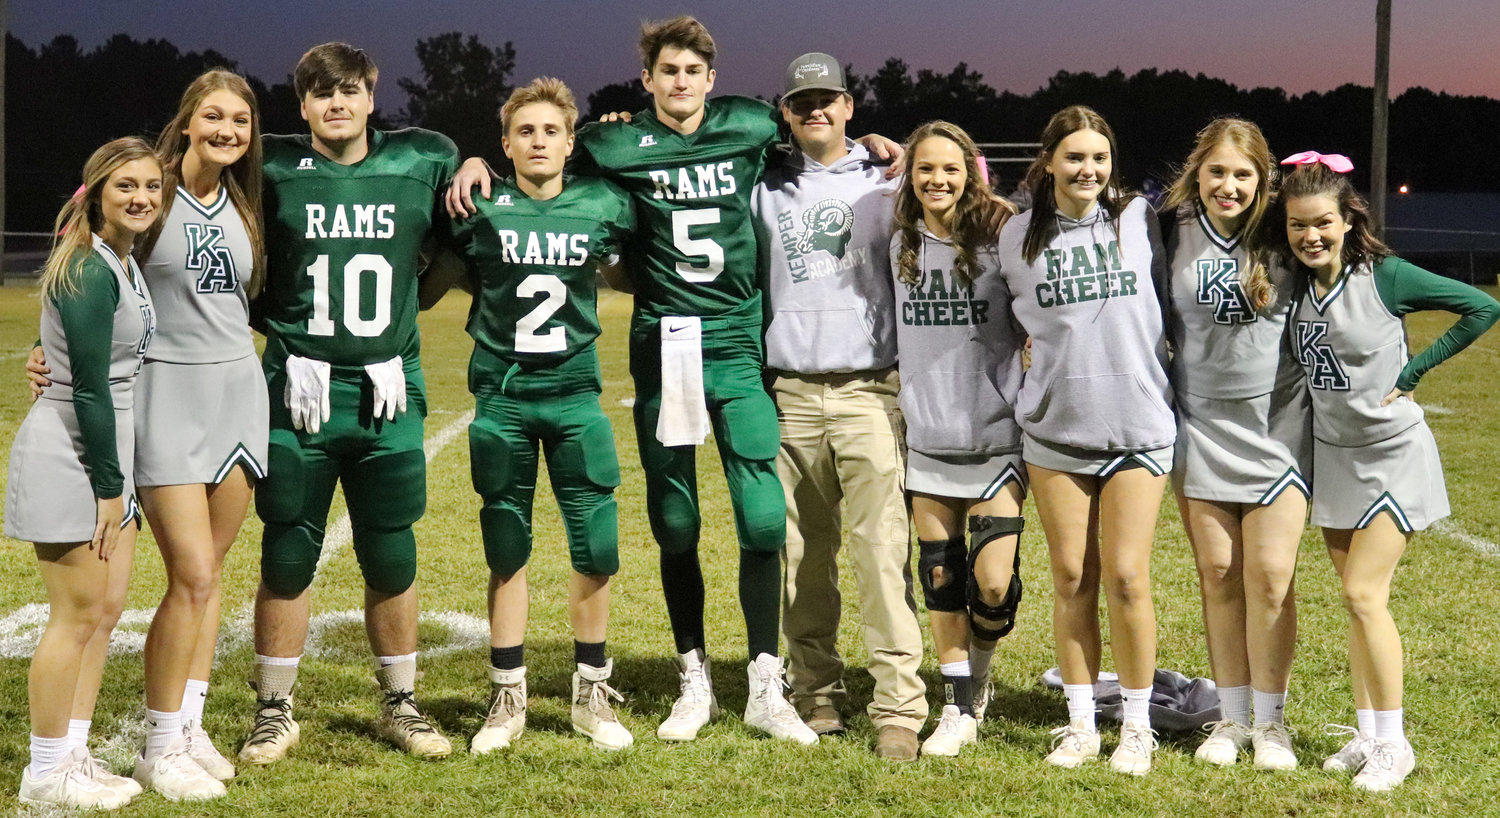 Left to right: Jordan Gully, Sara Gaylord, Dylan Williamson, Zach Ferrell, Dalton McFarland, Cash Wilson, Peyton Dawkins, Adri Hall, KK Holley and Hannah Jones Kemper Academy hosted Ben's Ford Christian School on Friday as the last game on The Hill for the 2020 football season.